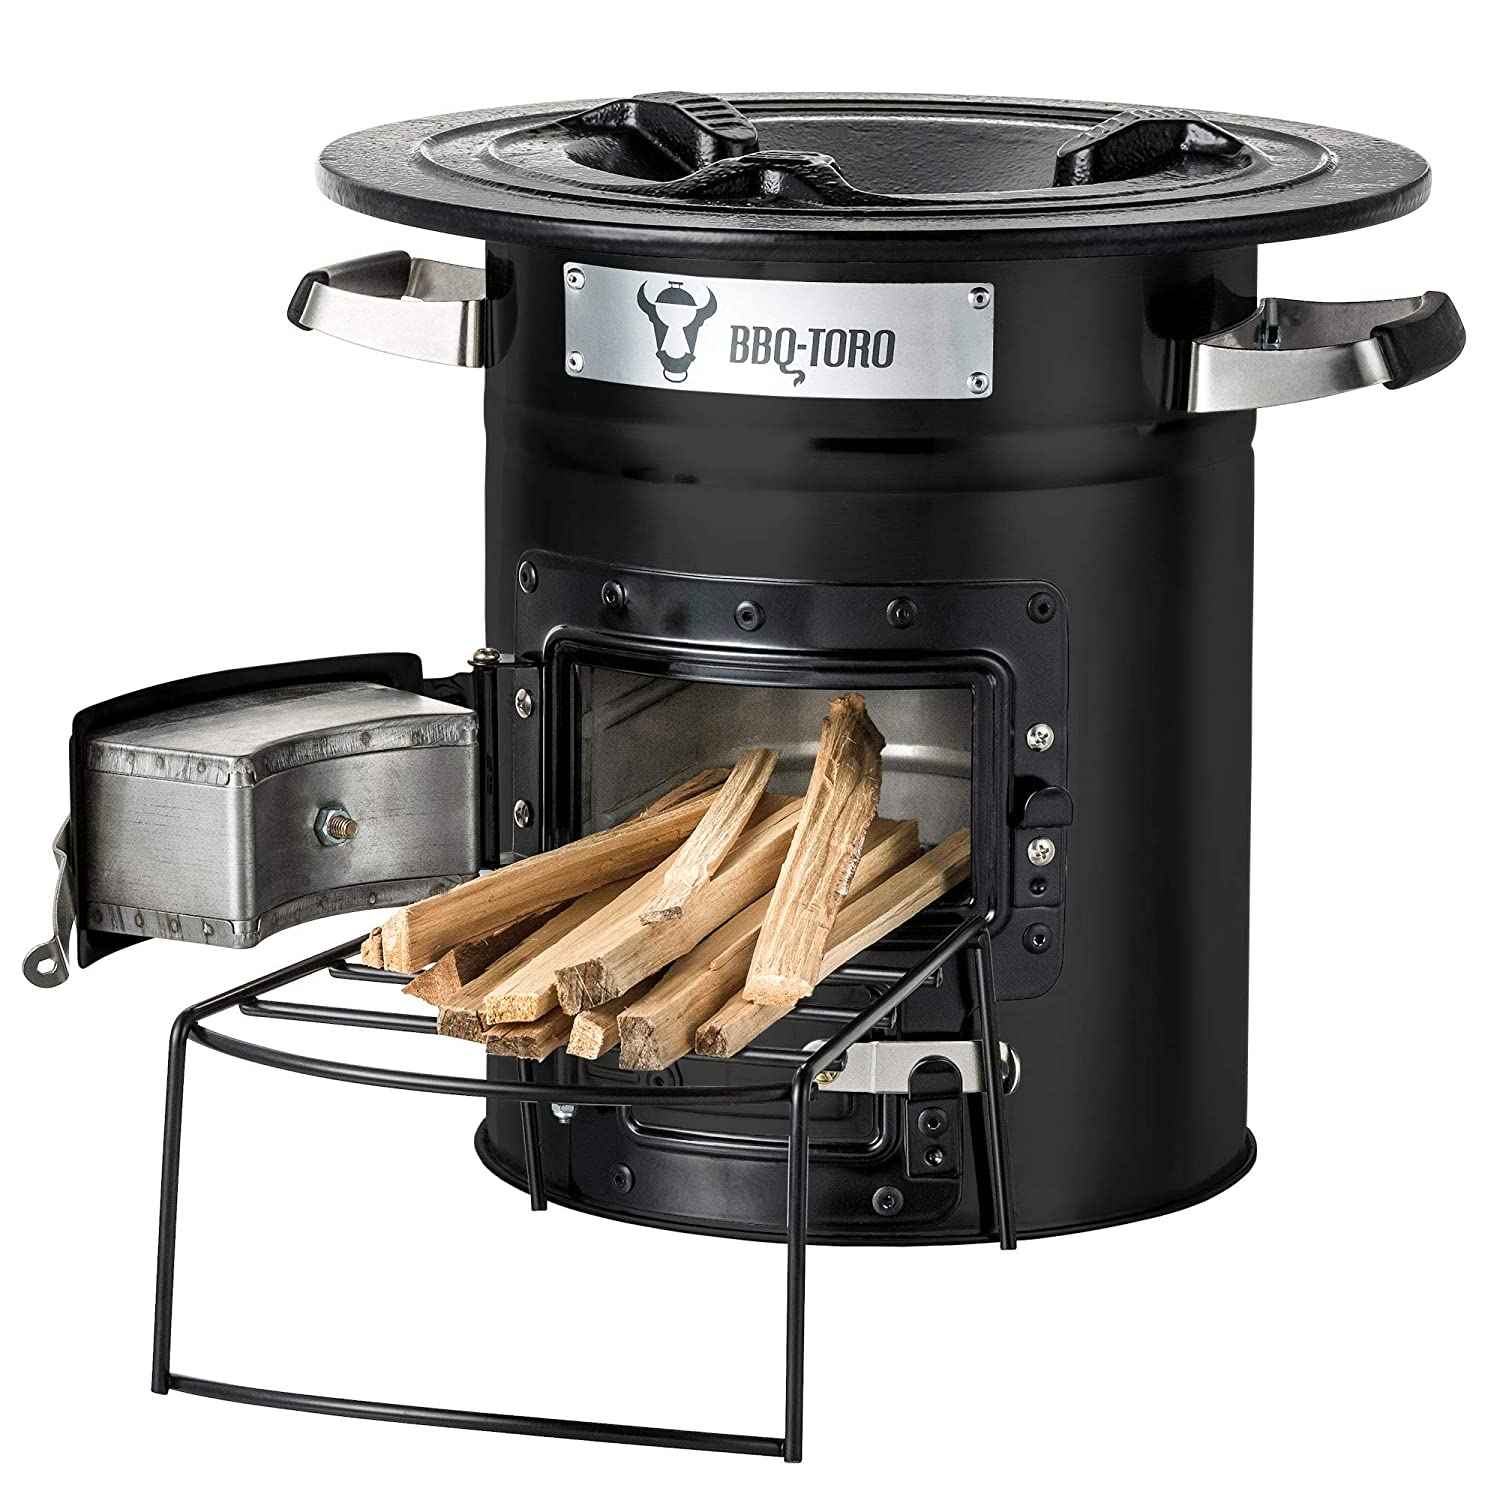 BBQ-Toro Rocket Stove RAKETE #2 - Portable Biomass, Wood Burning and Charcoal Survial Camp Stove for Camping and Outdoor